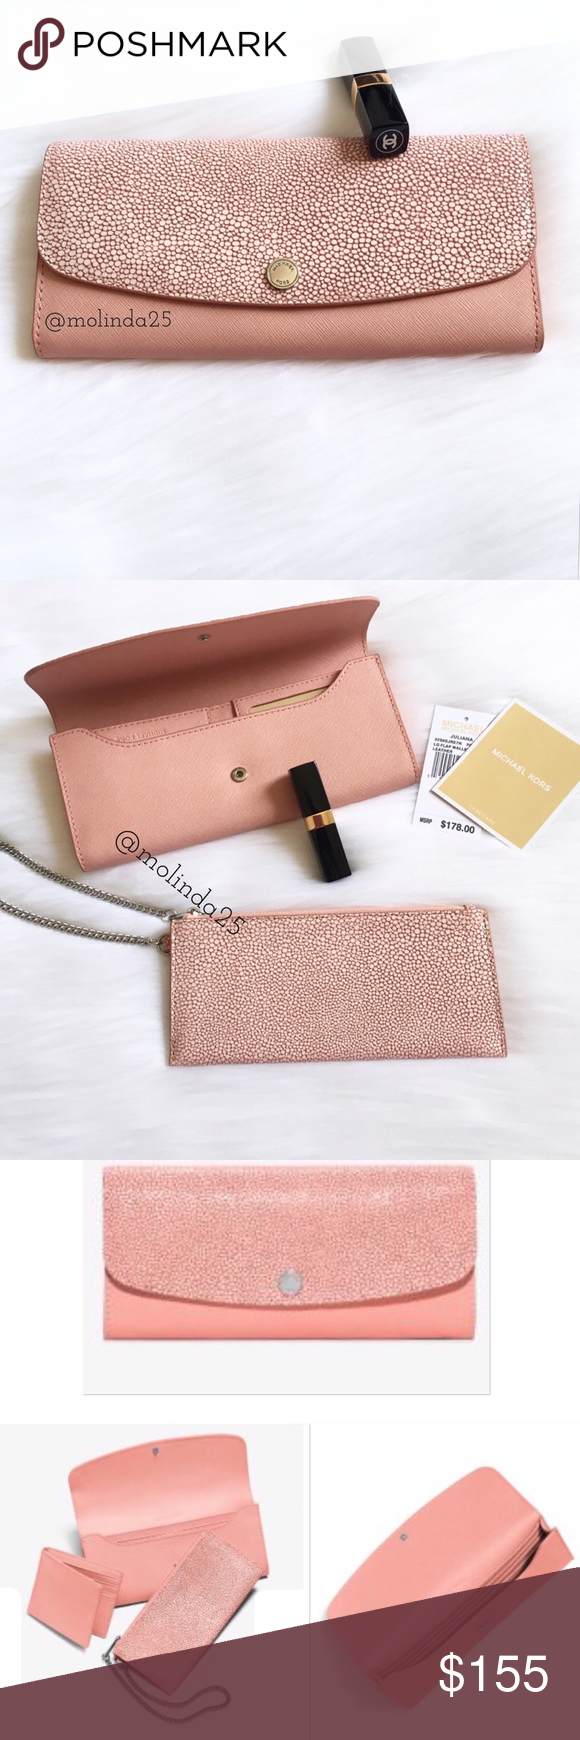 97464ec70db6 MICHAEL Michael Kors Juliana Large Wallet Absolutely Stunning MICHAEL  Michael Kors Juliana Large 3-IN-1 Saffiano Leather Wallet Color  Pale Pink  Perfect ...